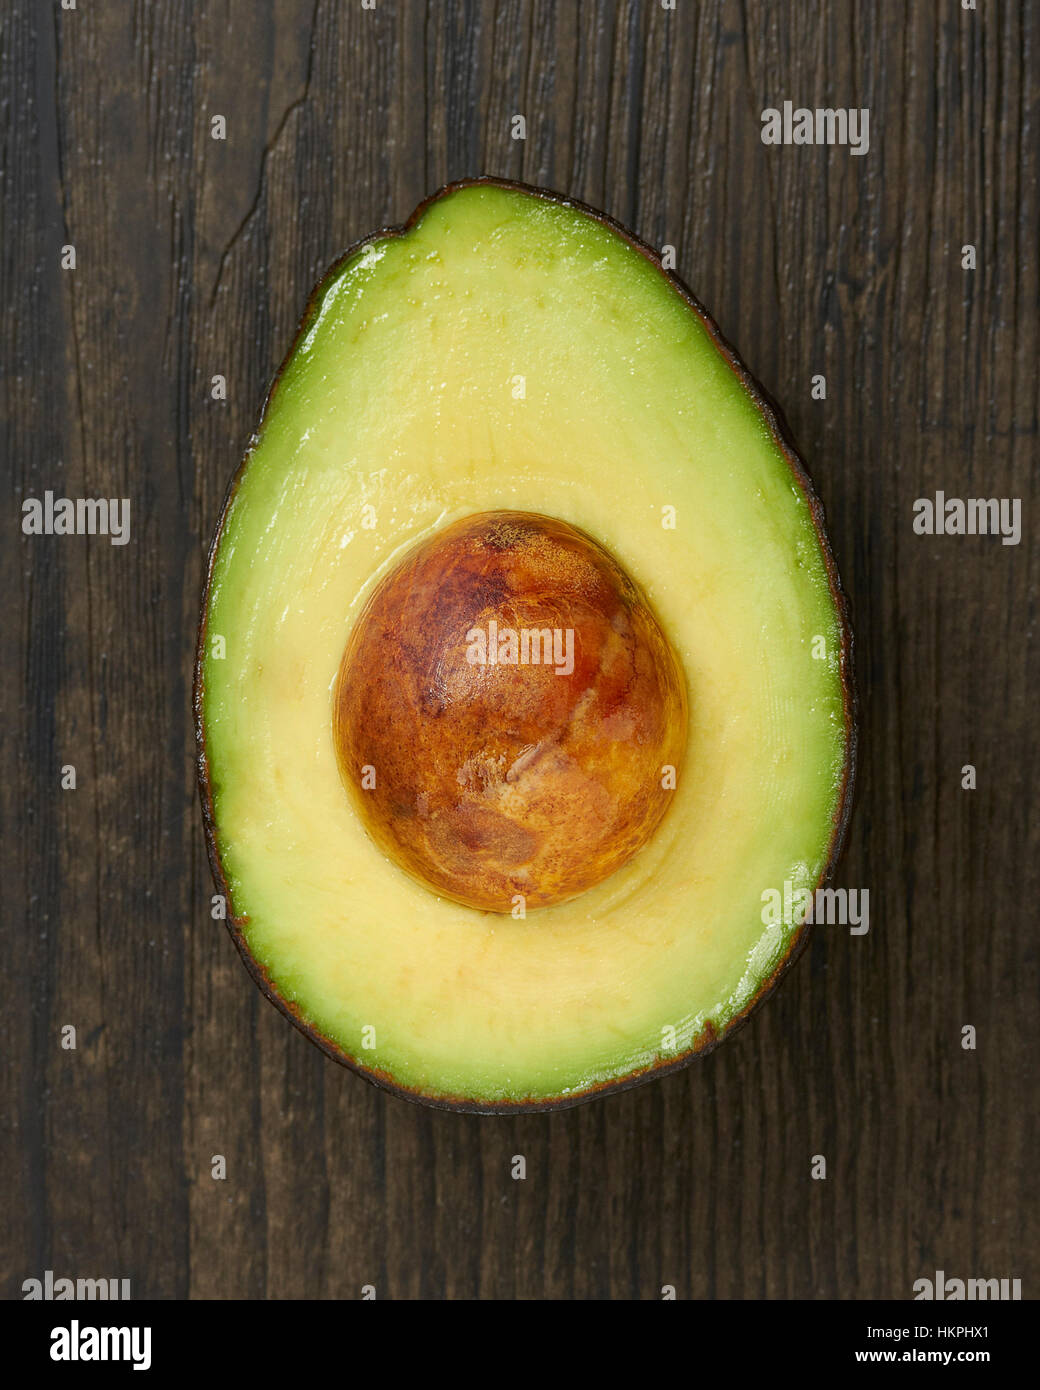 A Single Sliced Avocado Half - Stock Image